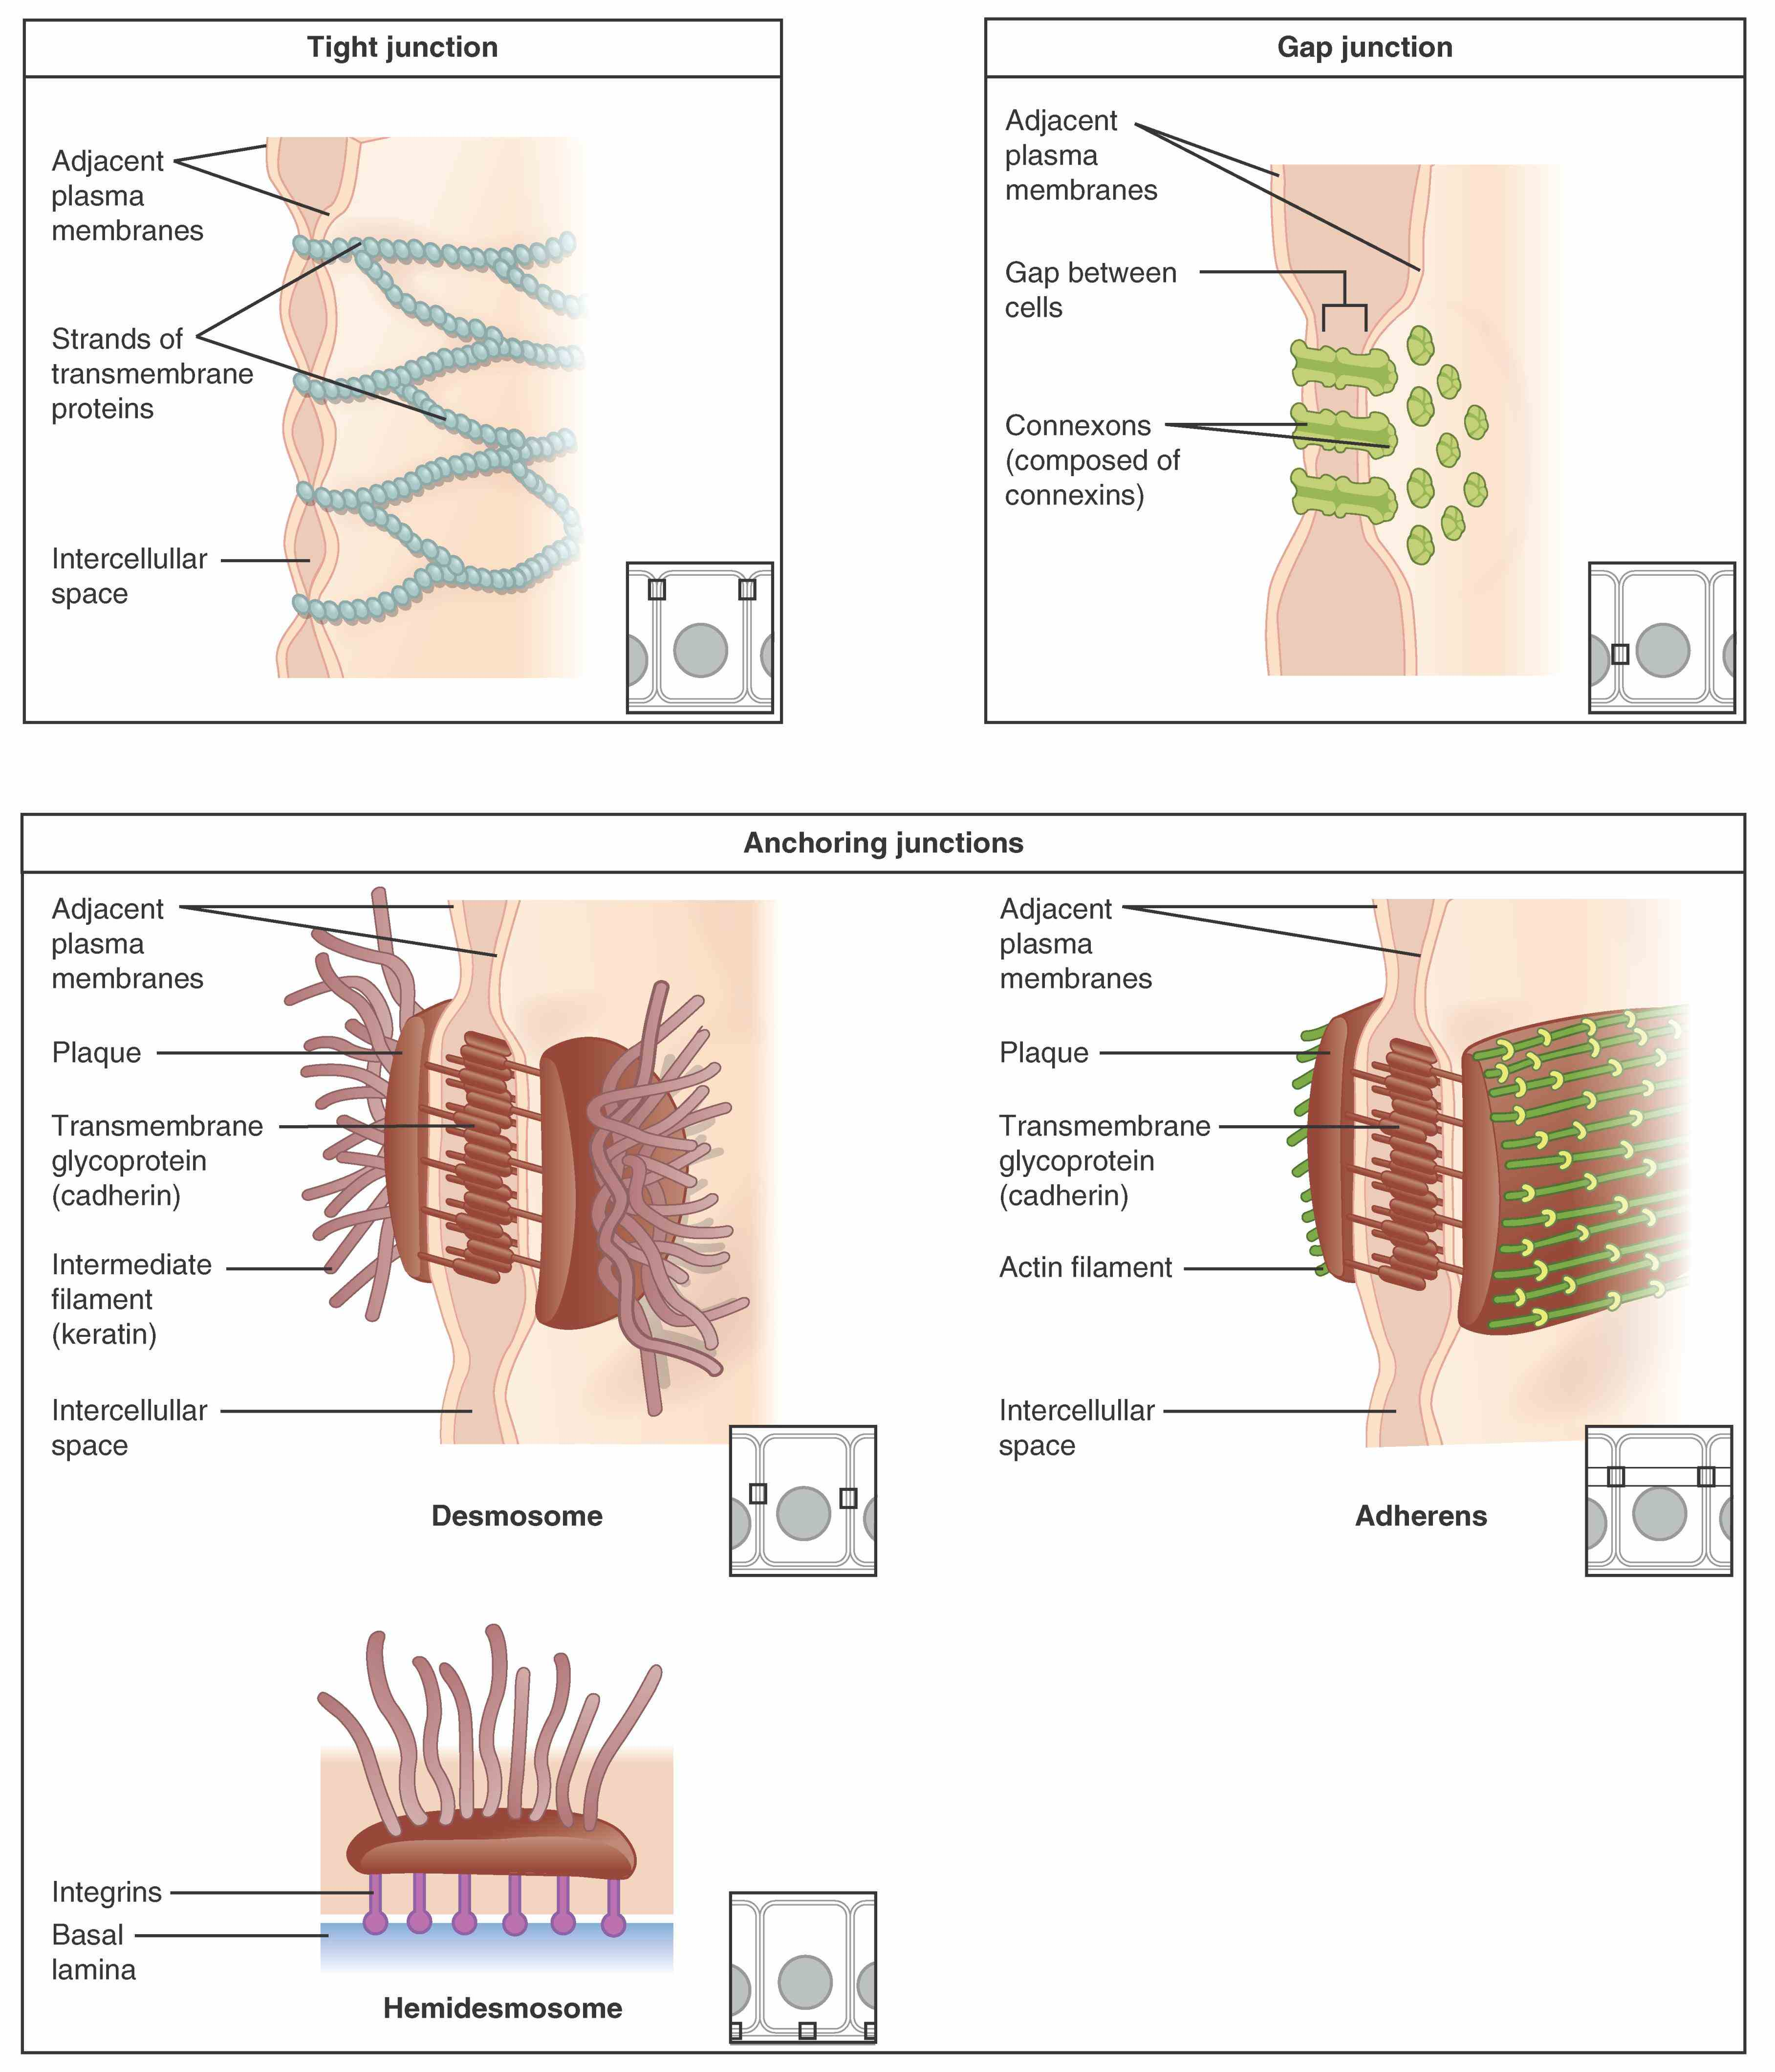 Of Epithelial Tissue more about types of epithelial tissue in the boundless open textbook is classified by cell shape